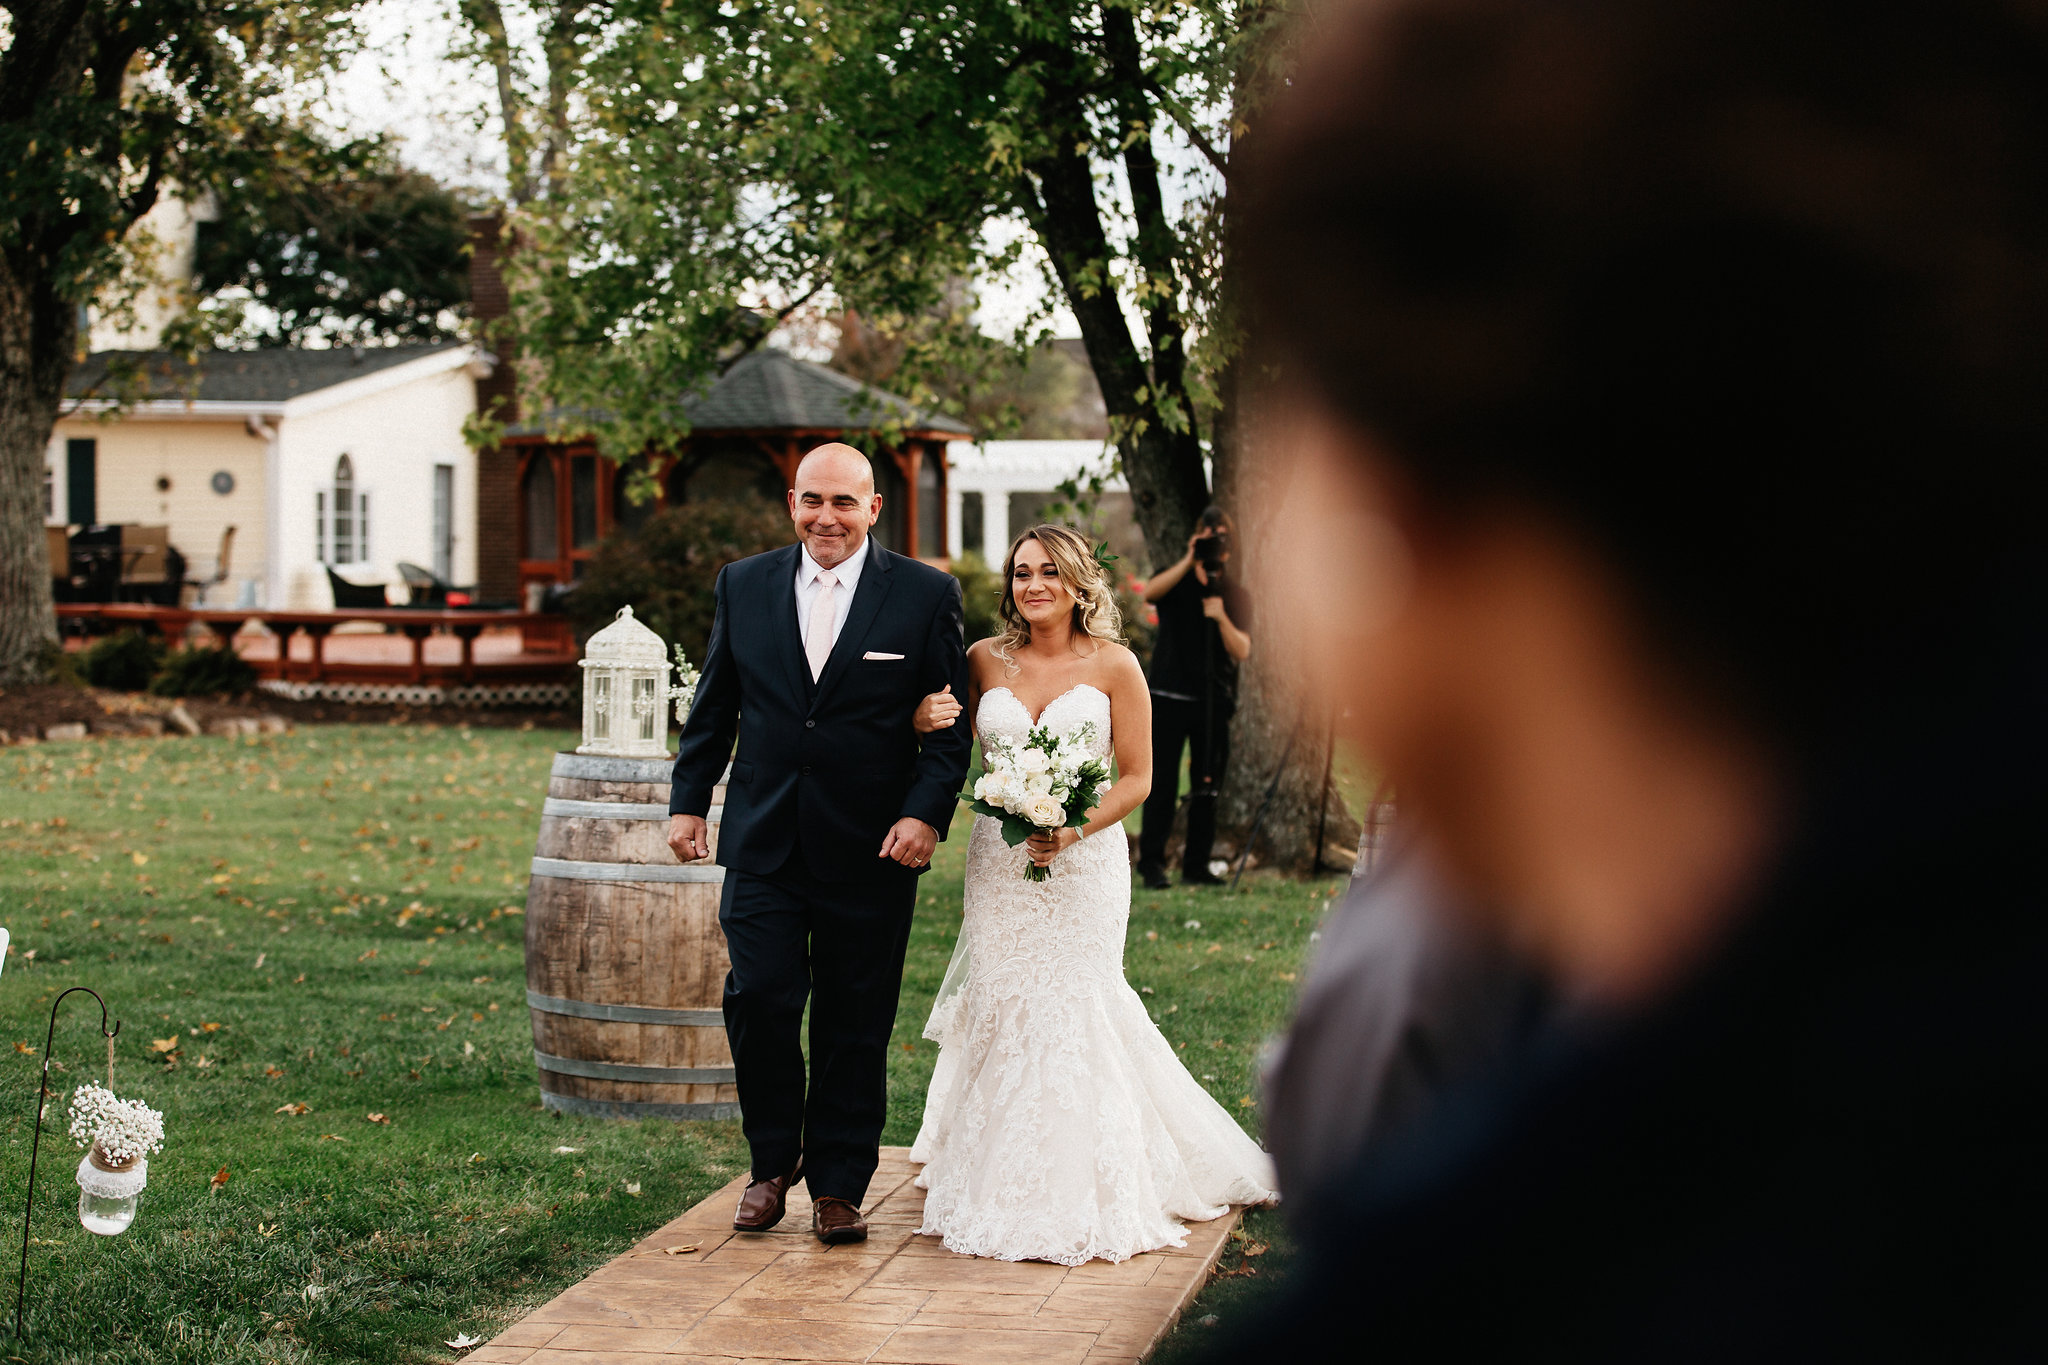 Ashley&NathanMarried2017-11-10at19.26.48PM24.jpg